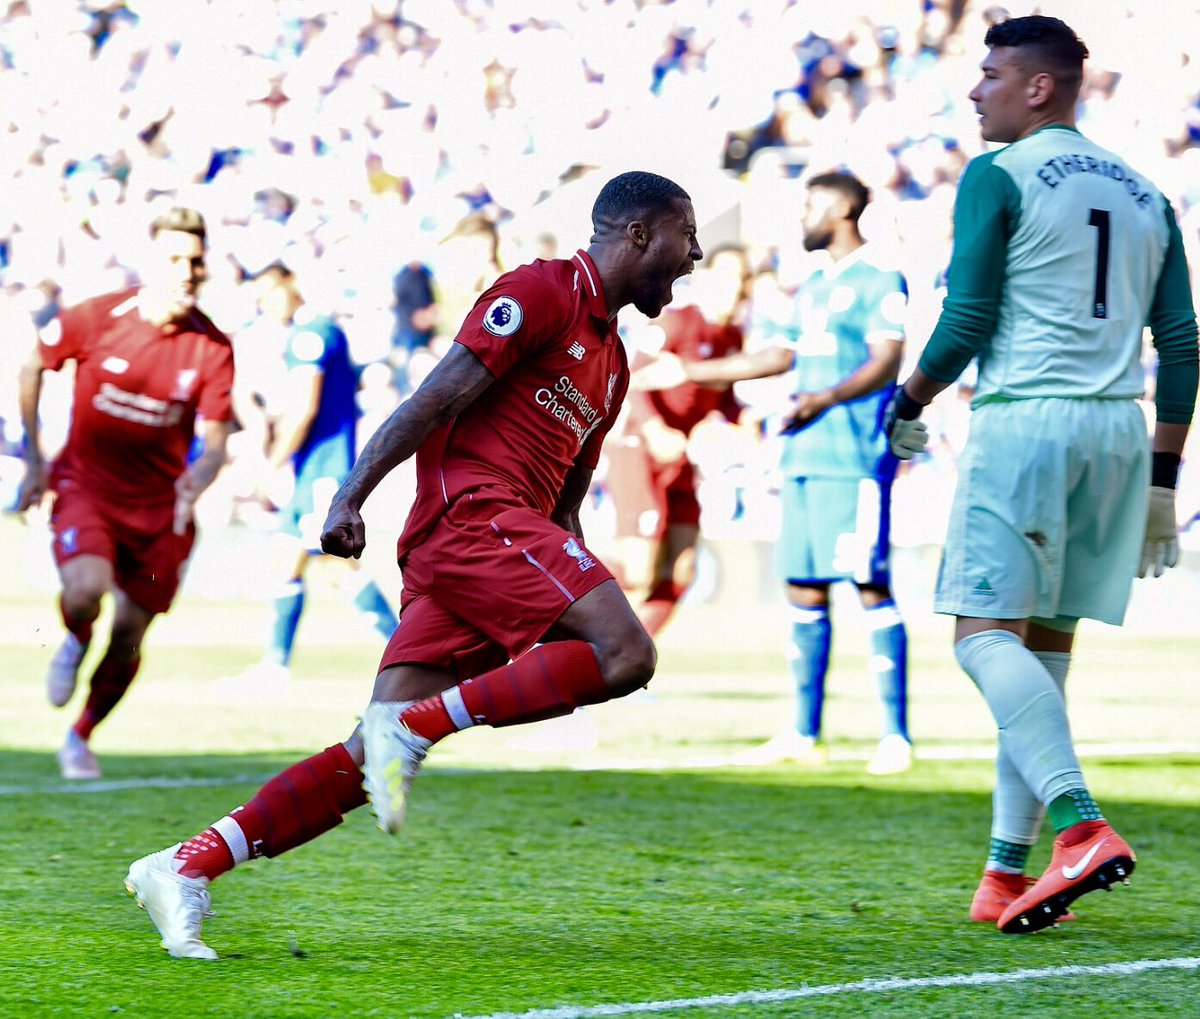 What an amazing Sunday it was! 🙌🏾 Honored to be named Man of the Match as well, thank you 🙏🏾❤️ #YNWA #CARLIV